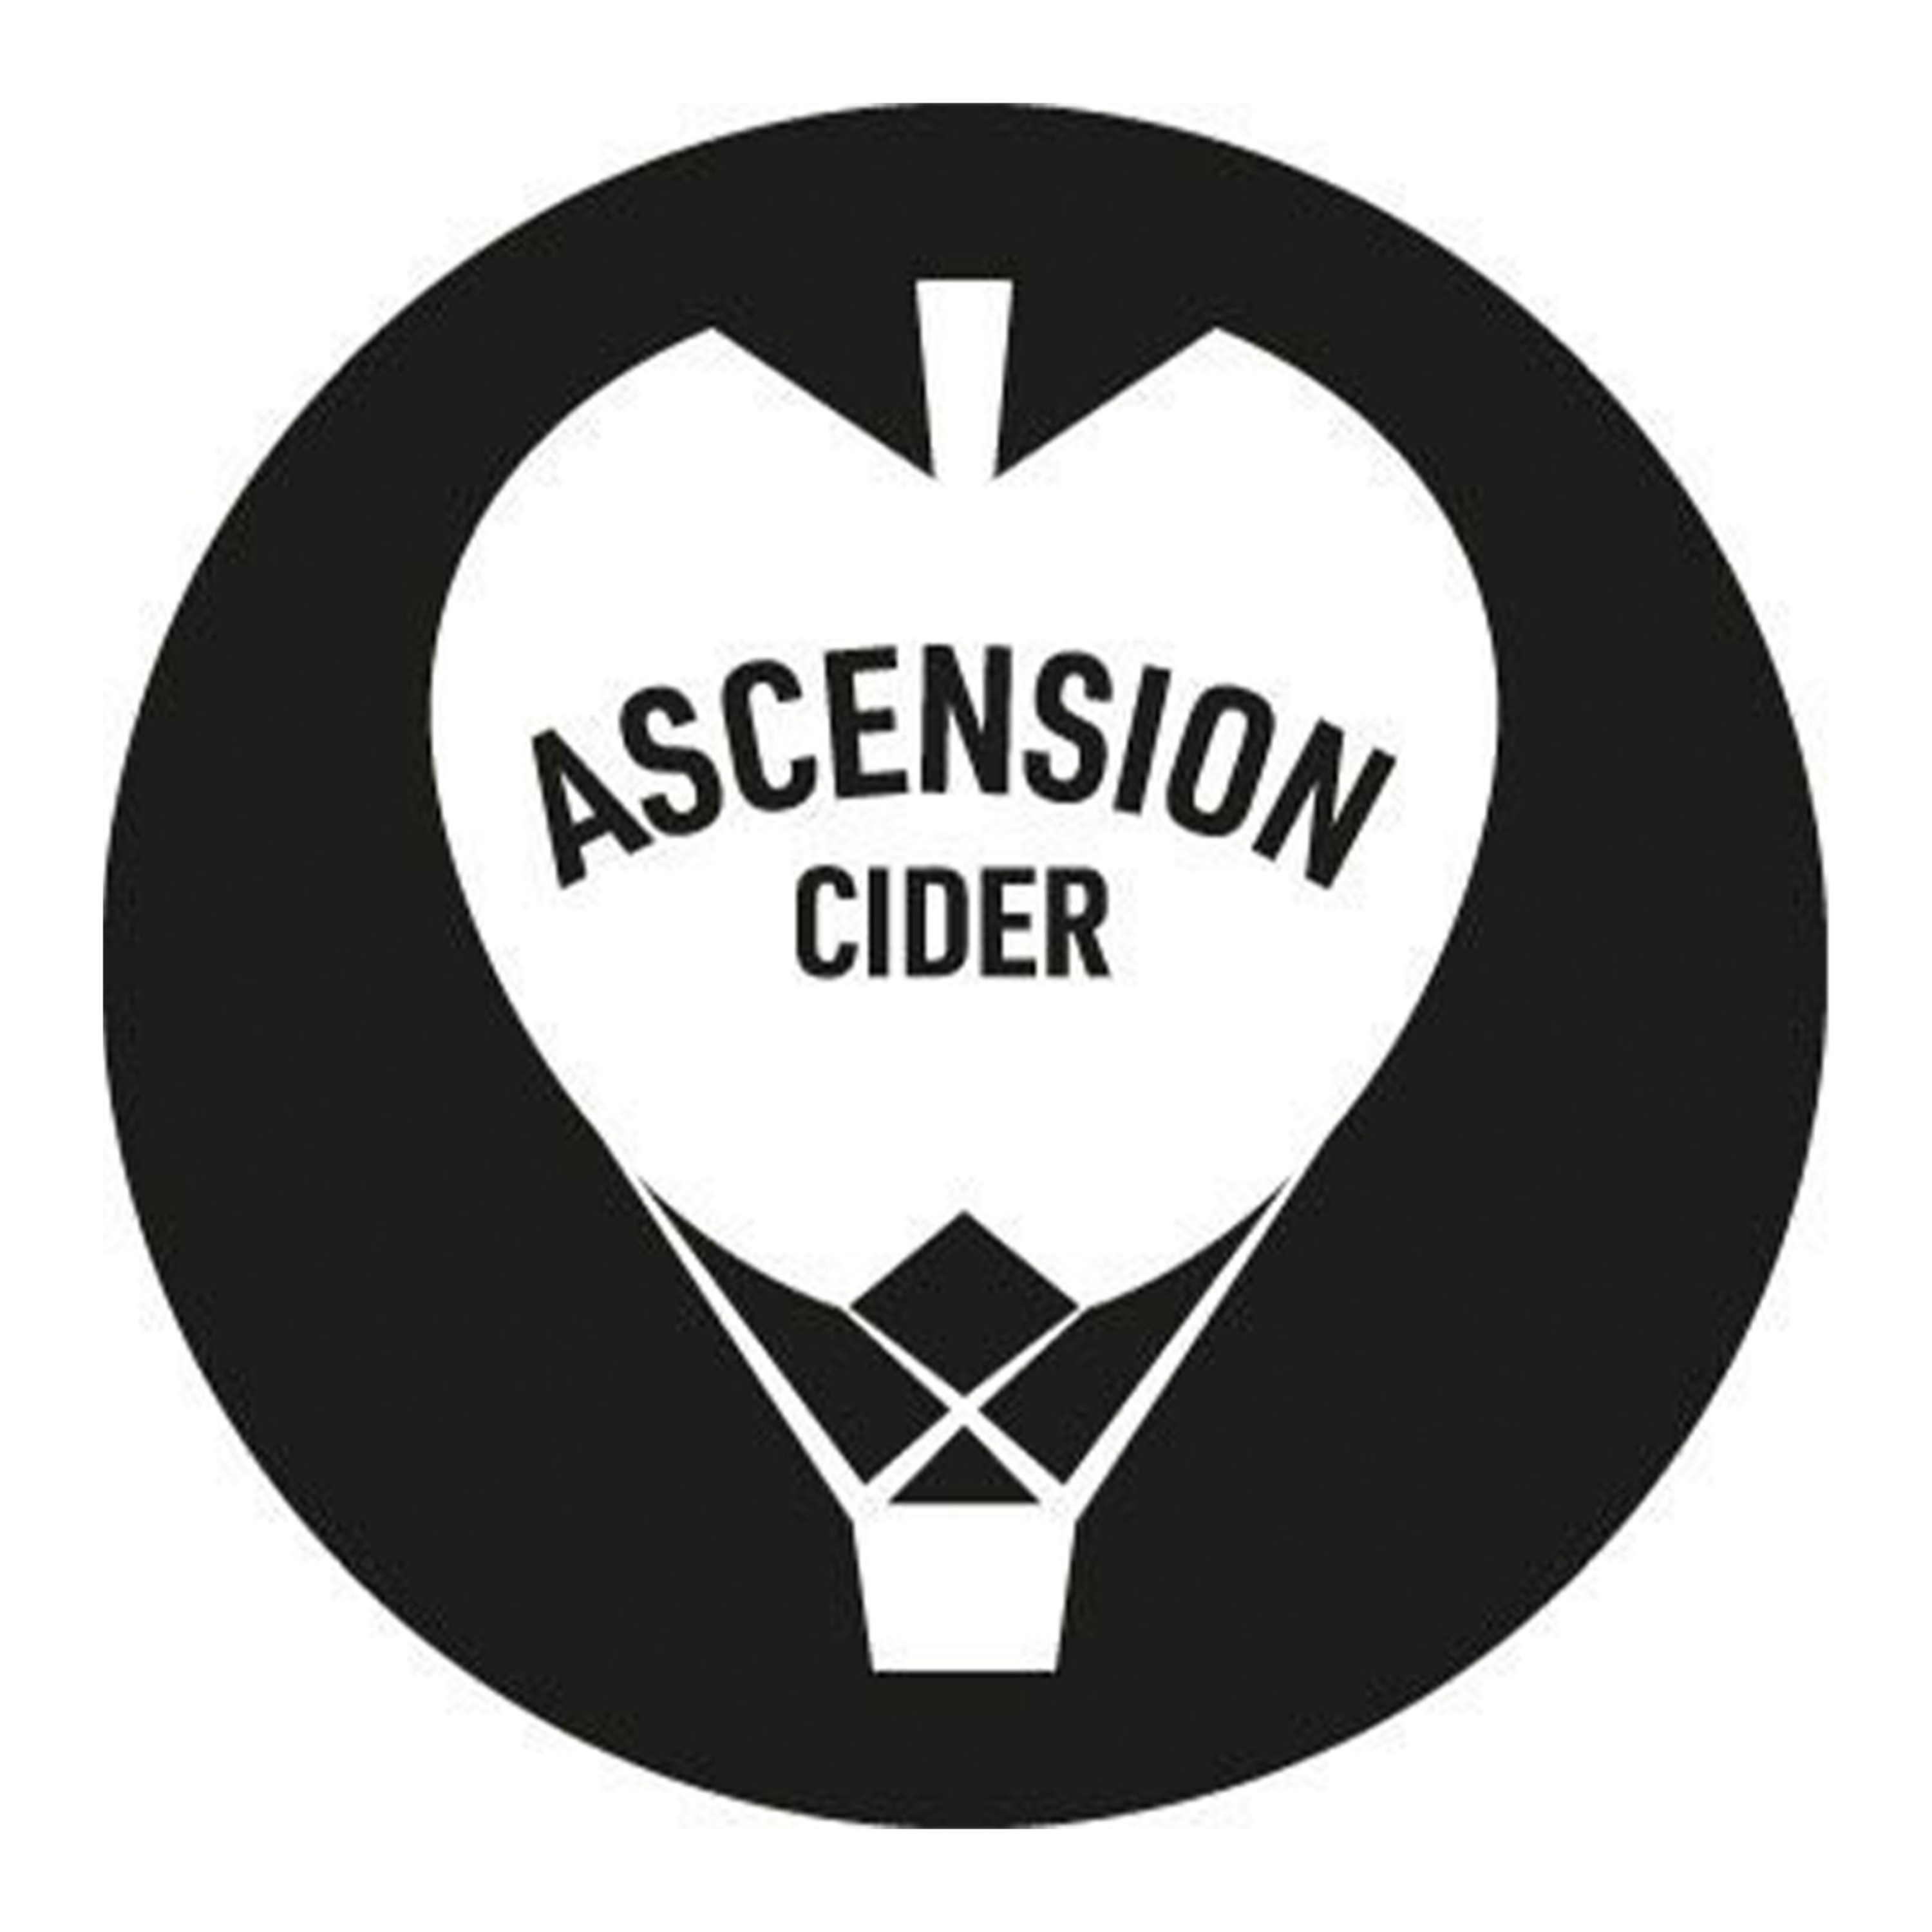 Sussex Cider From Ascension